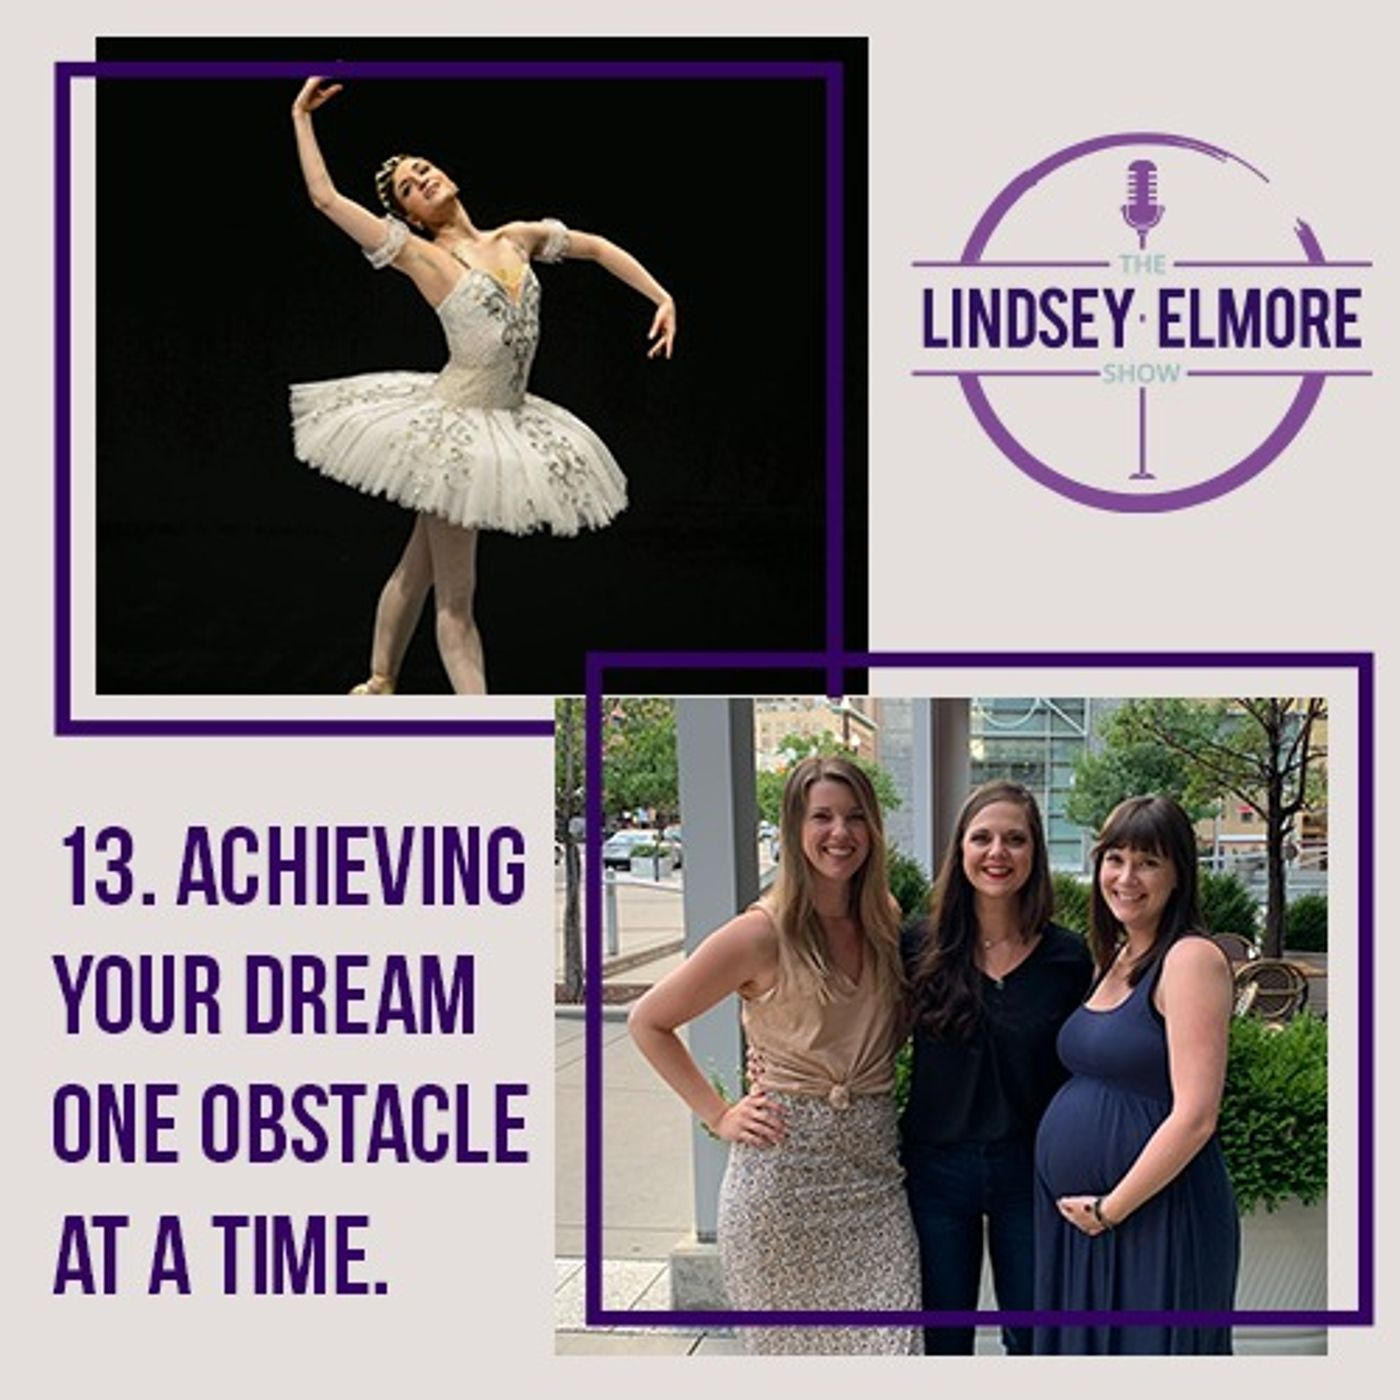 Achieving your dream one obstacle at a time. Interviews with Joy Womack, Chelsea Tenney, Kate Lyons, and Haylee Crowley.